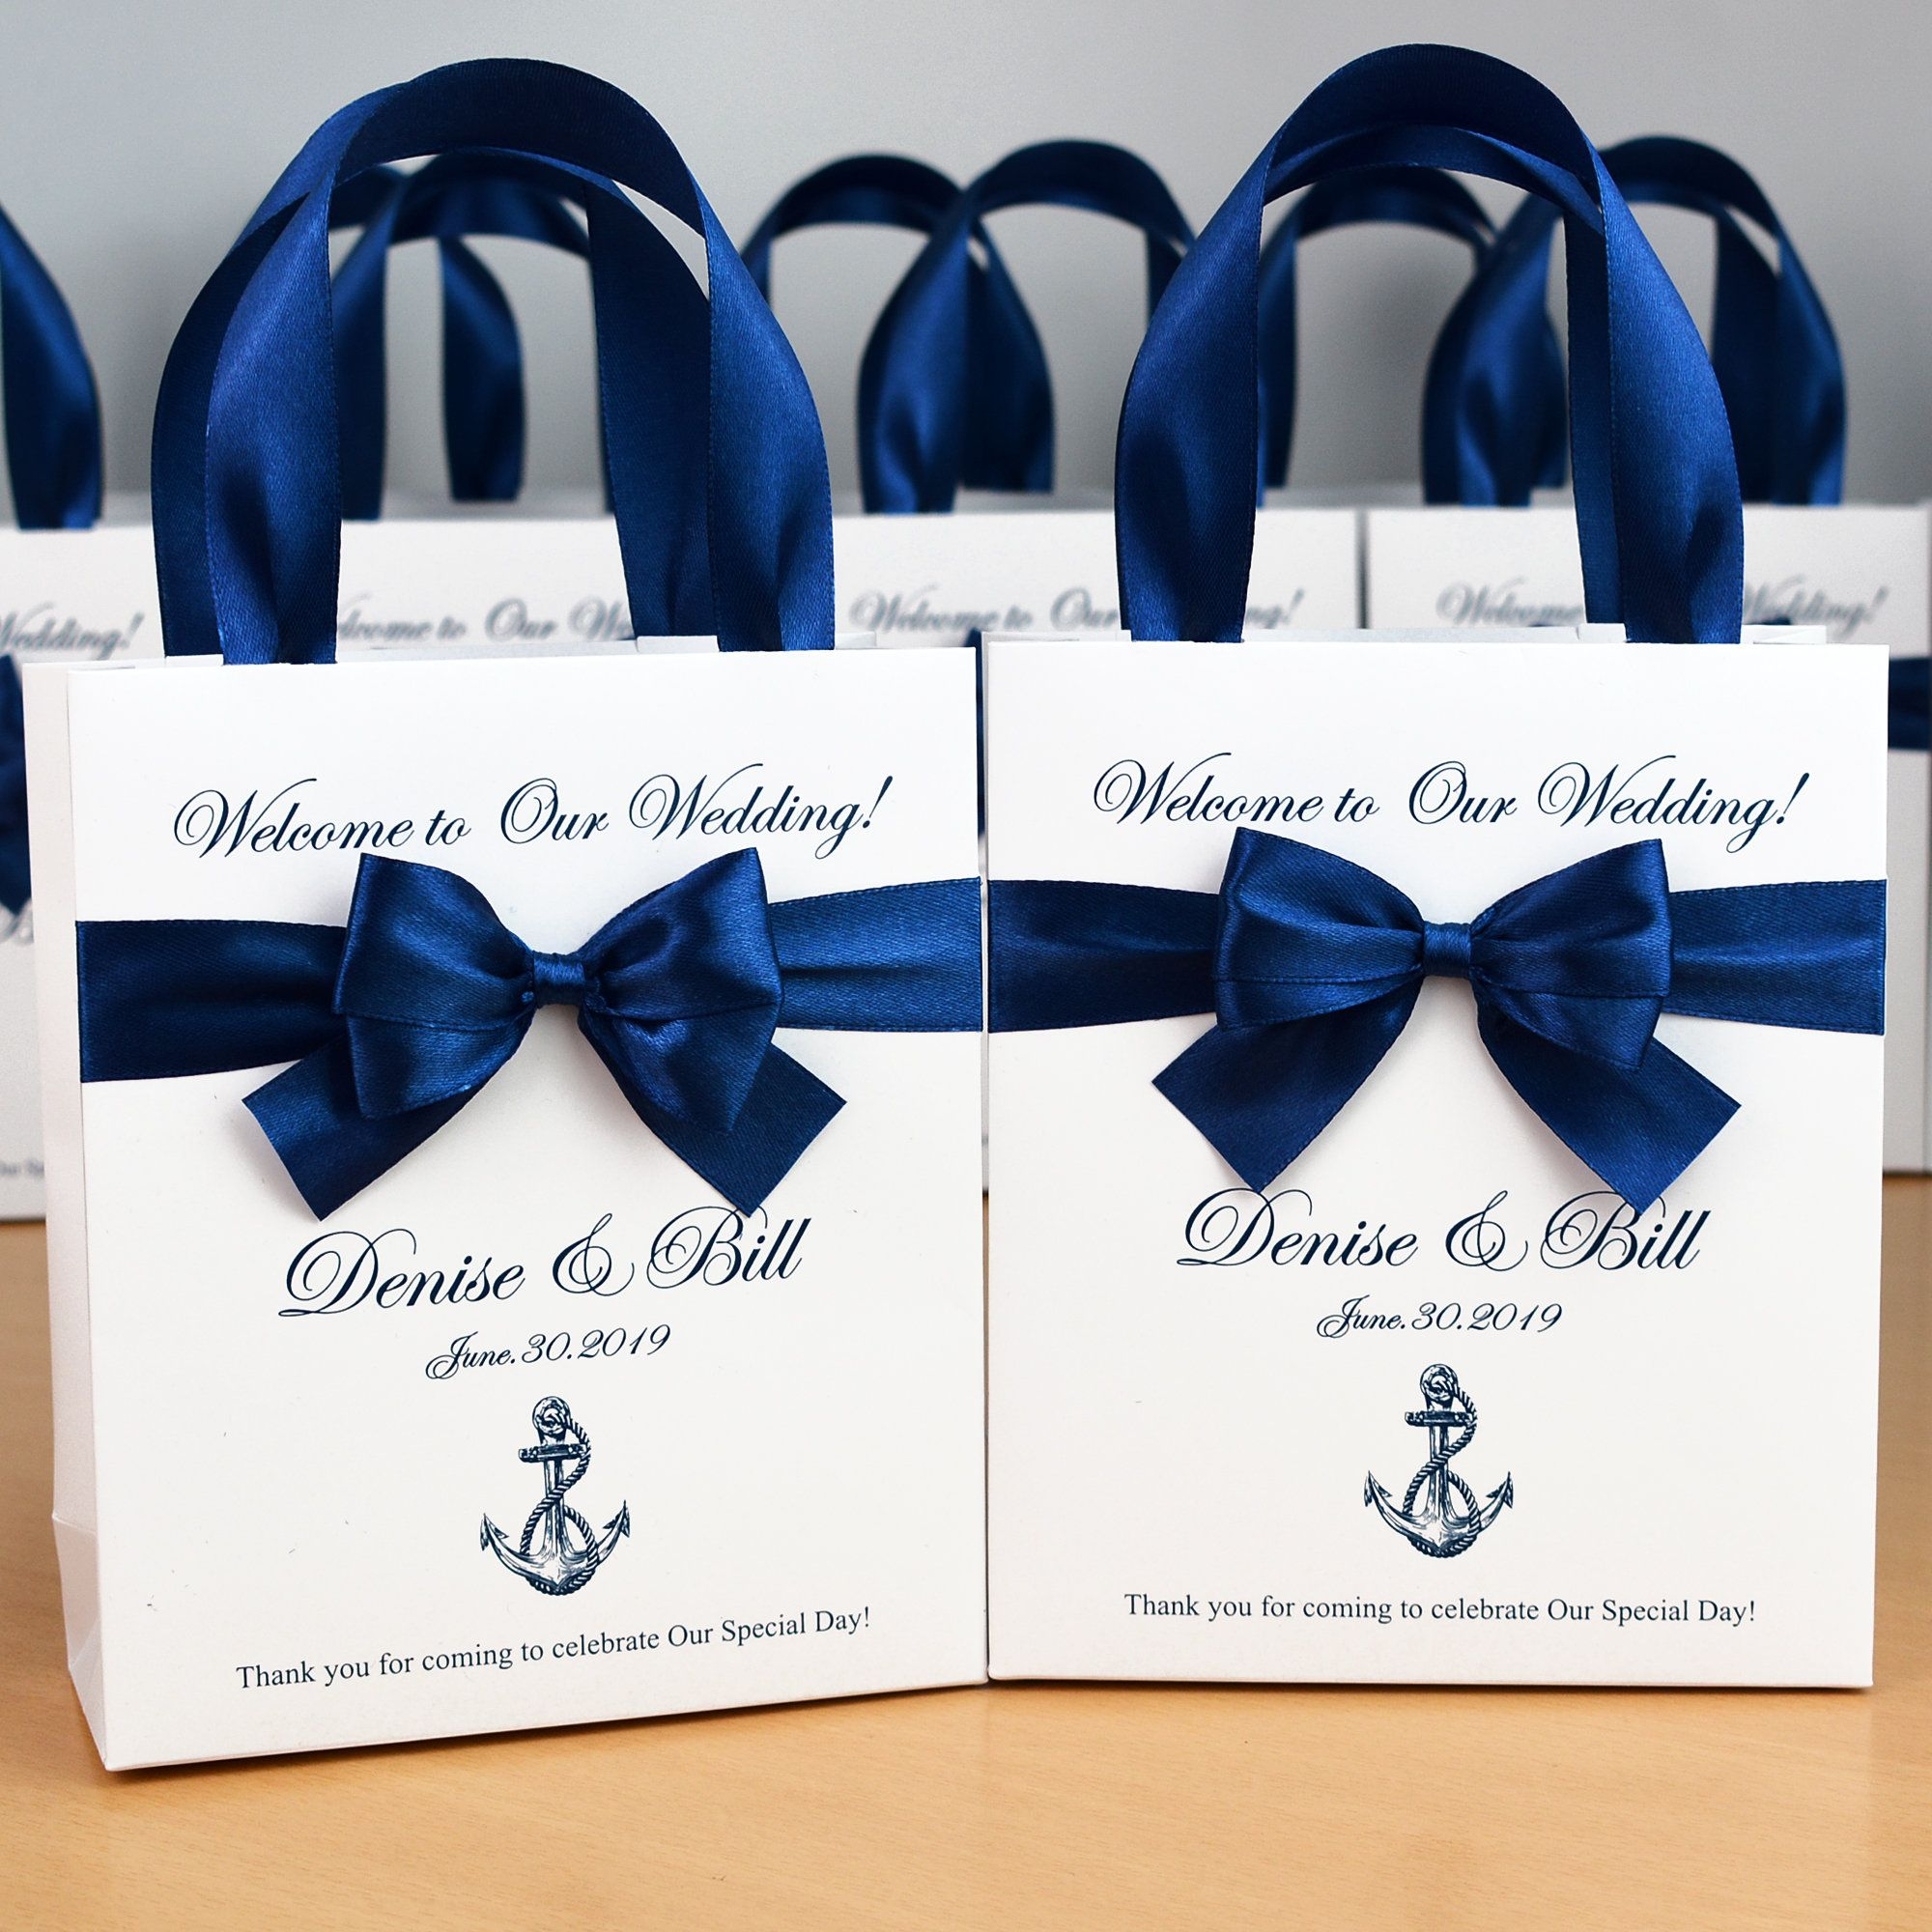 20 Nautical Wedding Welcome Bags With Satin Ribbon Handles Etsy In 2020 Wedding Party Gift Bags Wedding Goodie Bags Wedding Welcome Bags